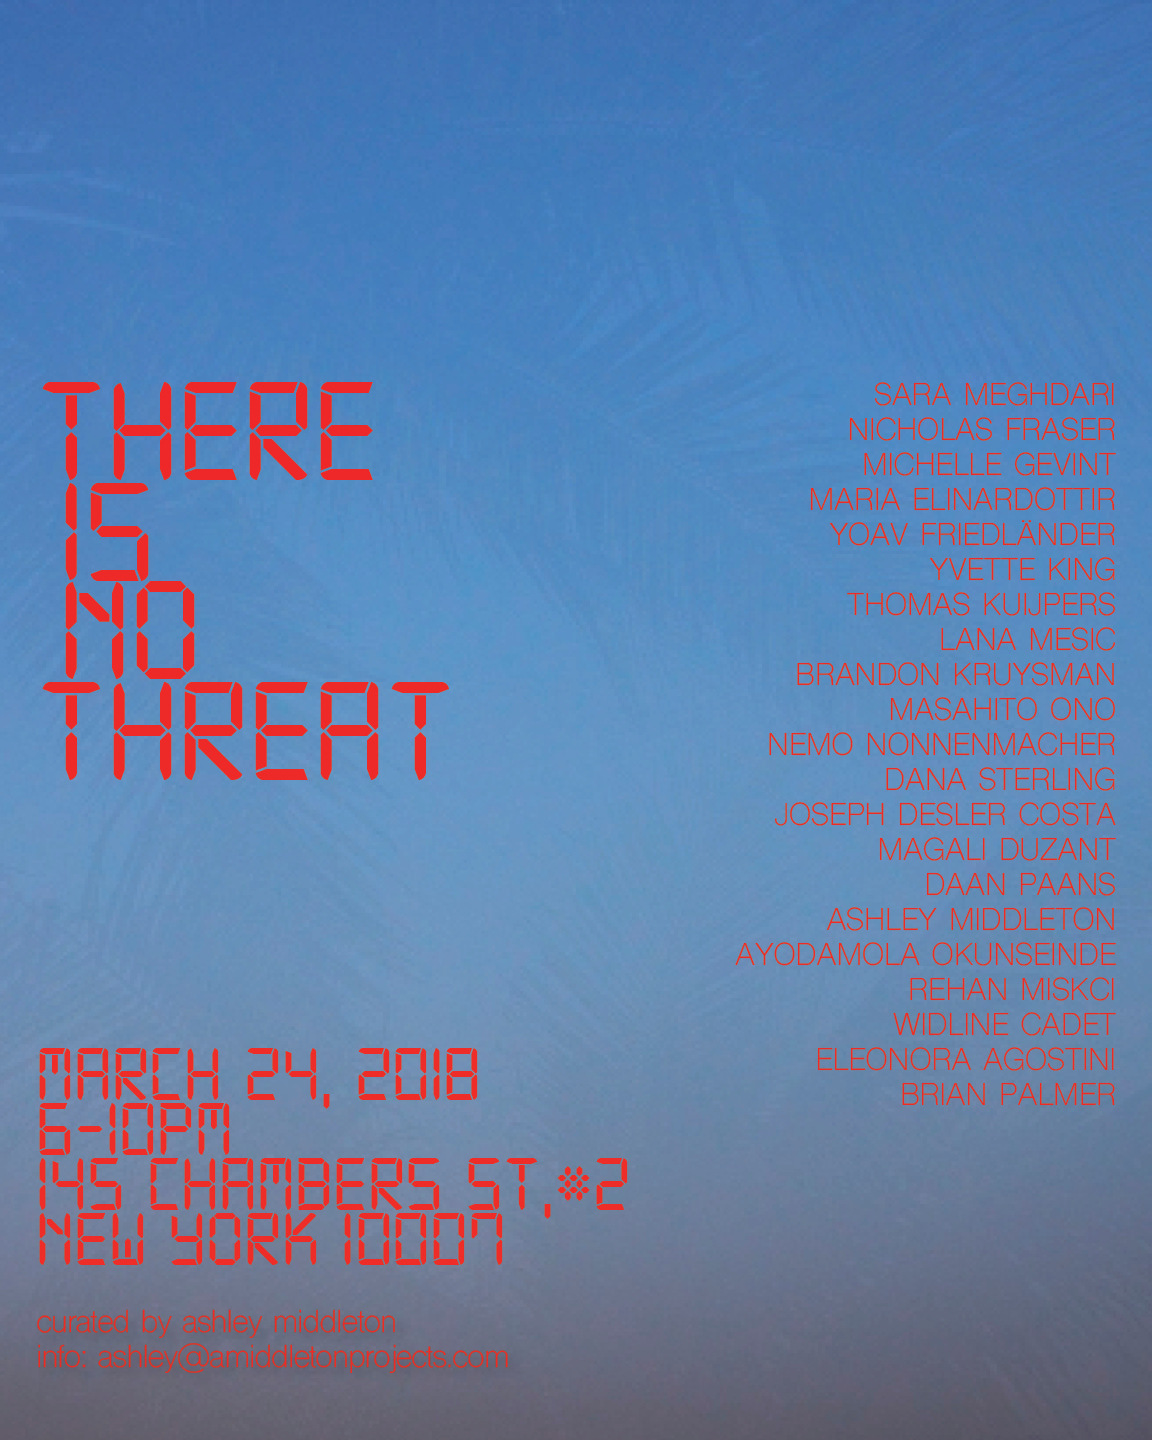 There Is No Threat curated by Ashley Middleton opens March 24th in Tribeca. I'll be running a version of Live Streaming Sunset work !   Press Release here